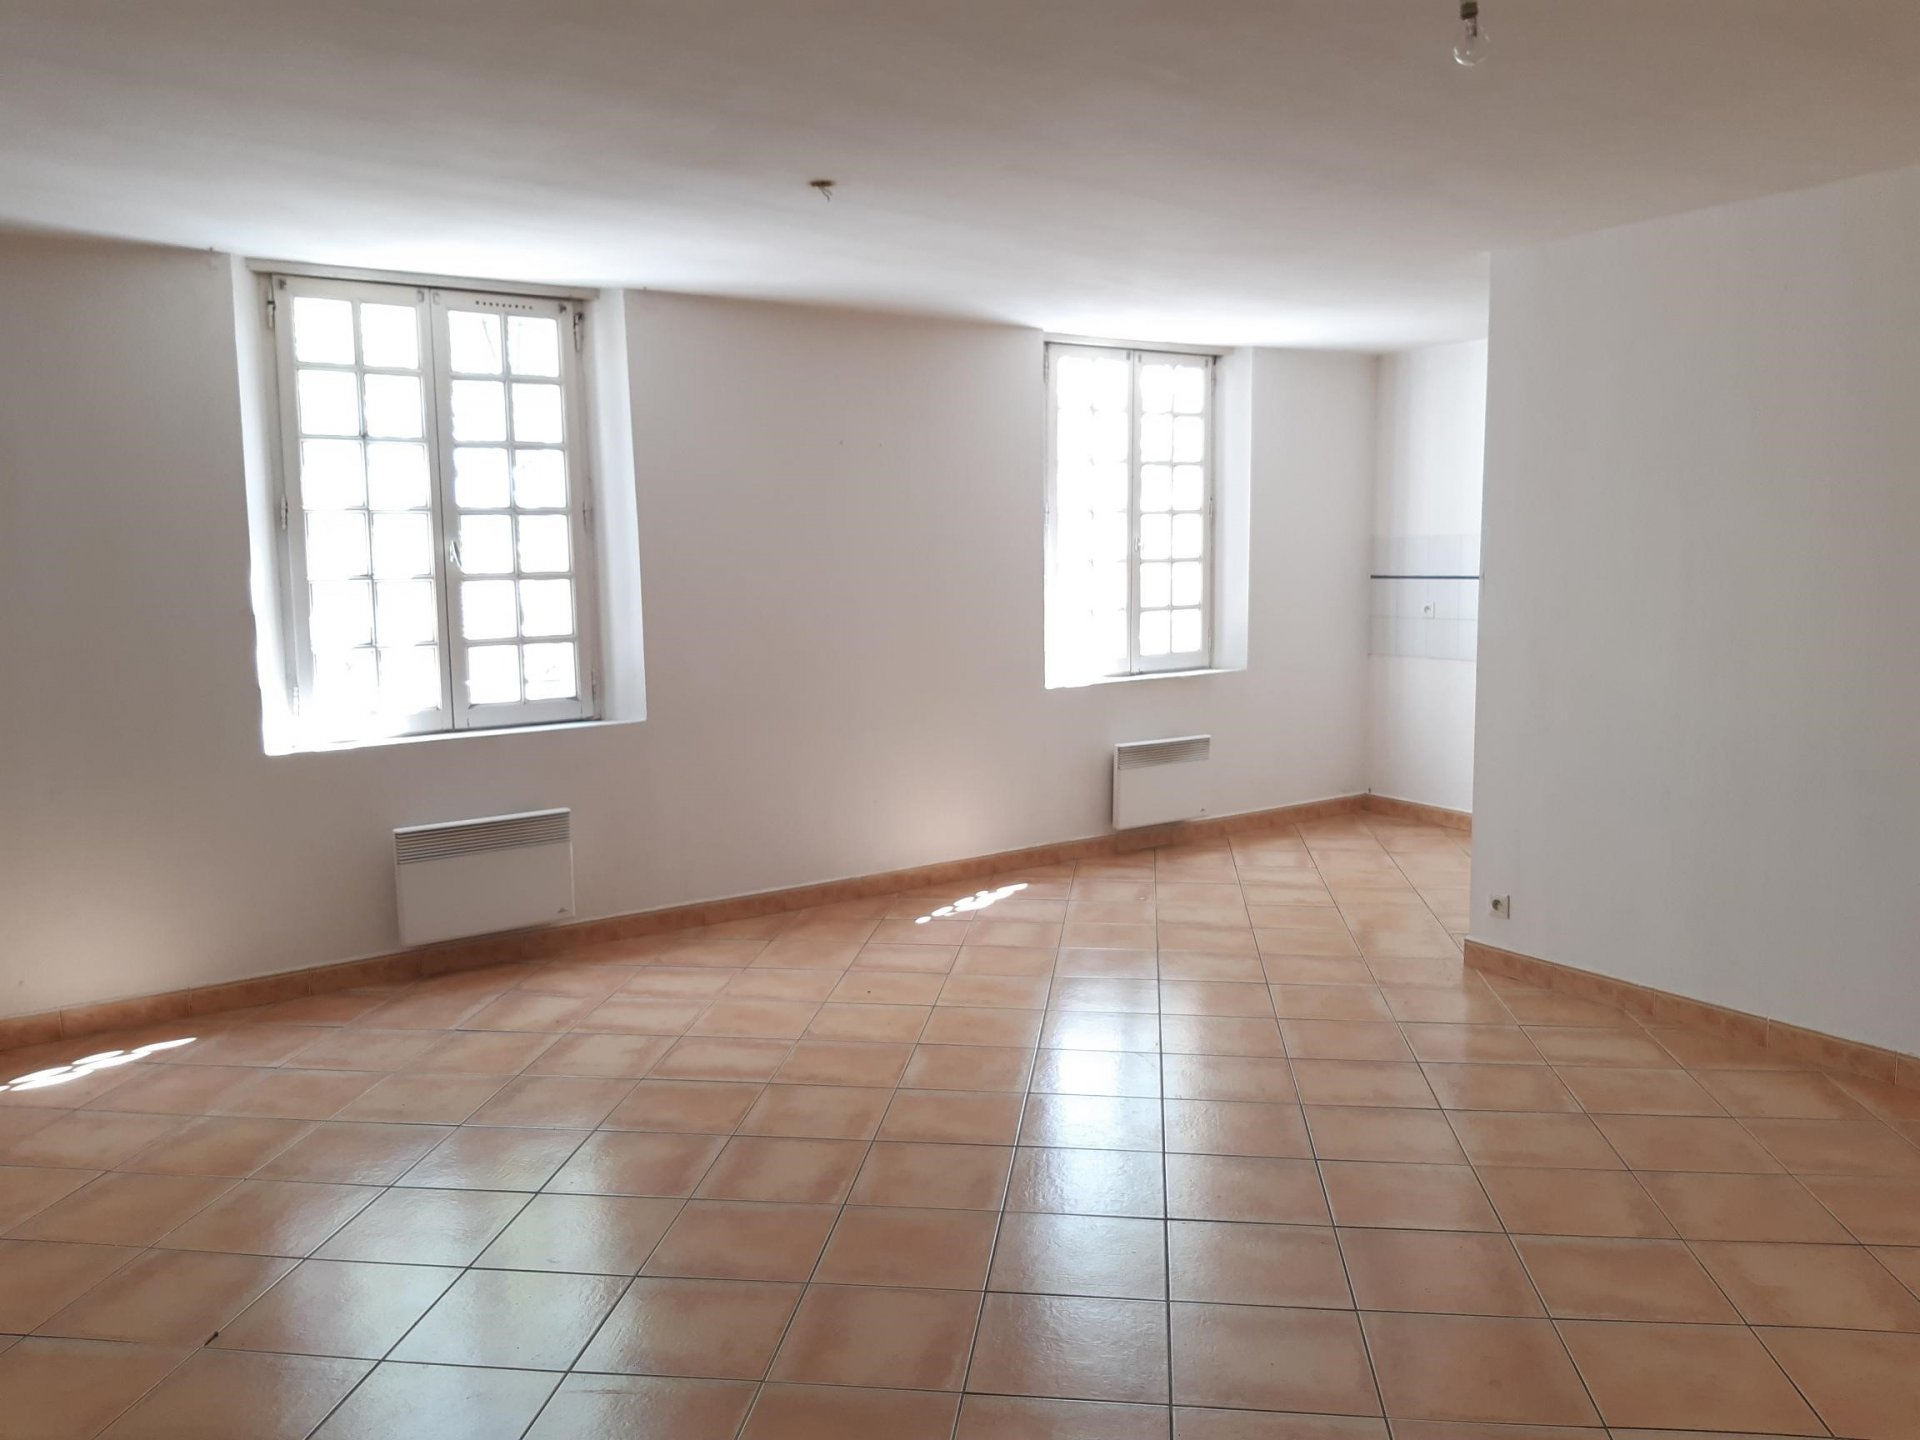 Location Appartement TARASCON Mandat : 0336